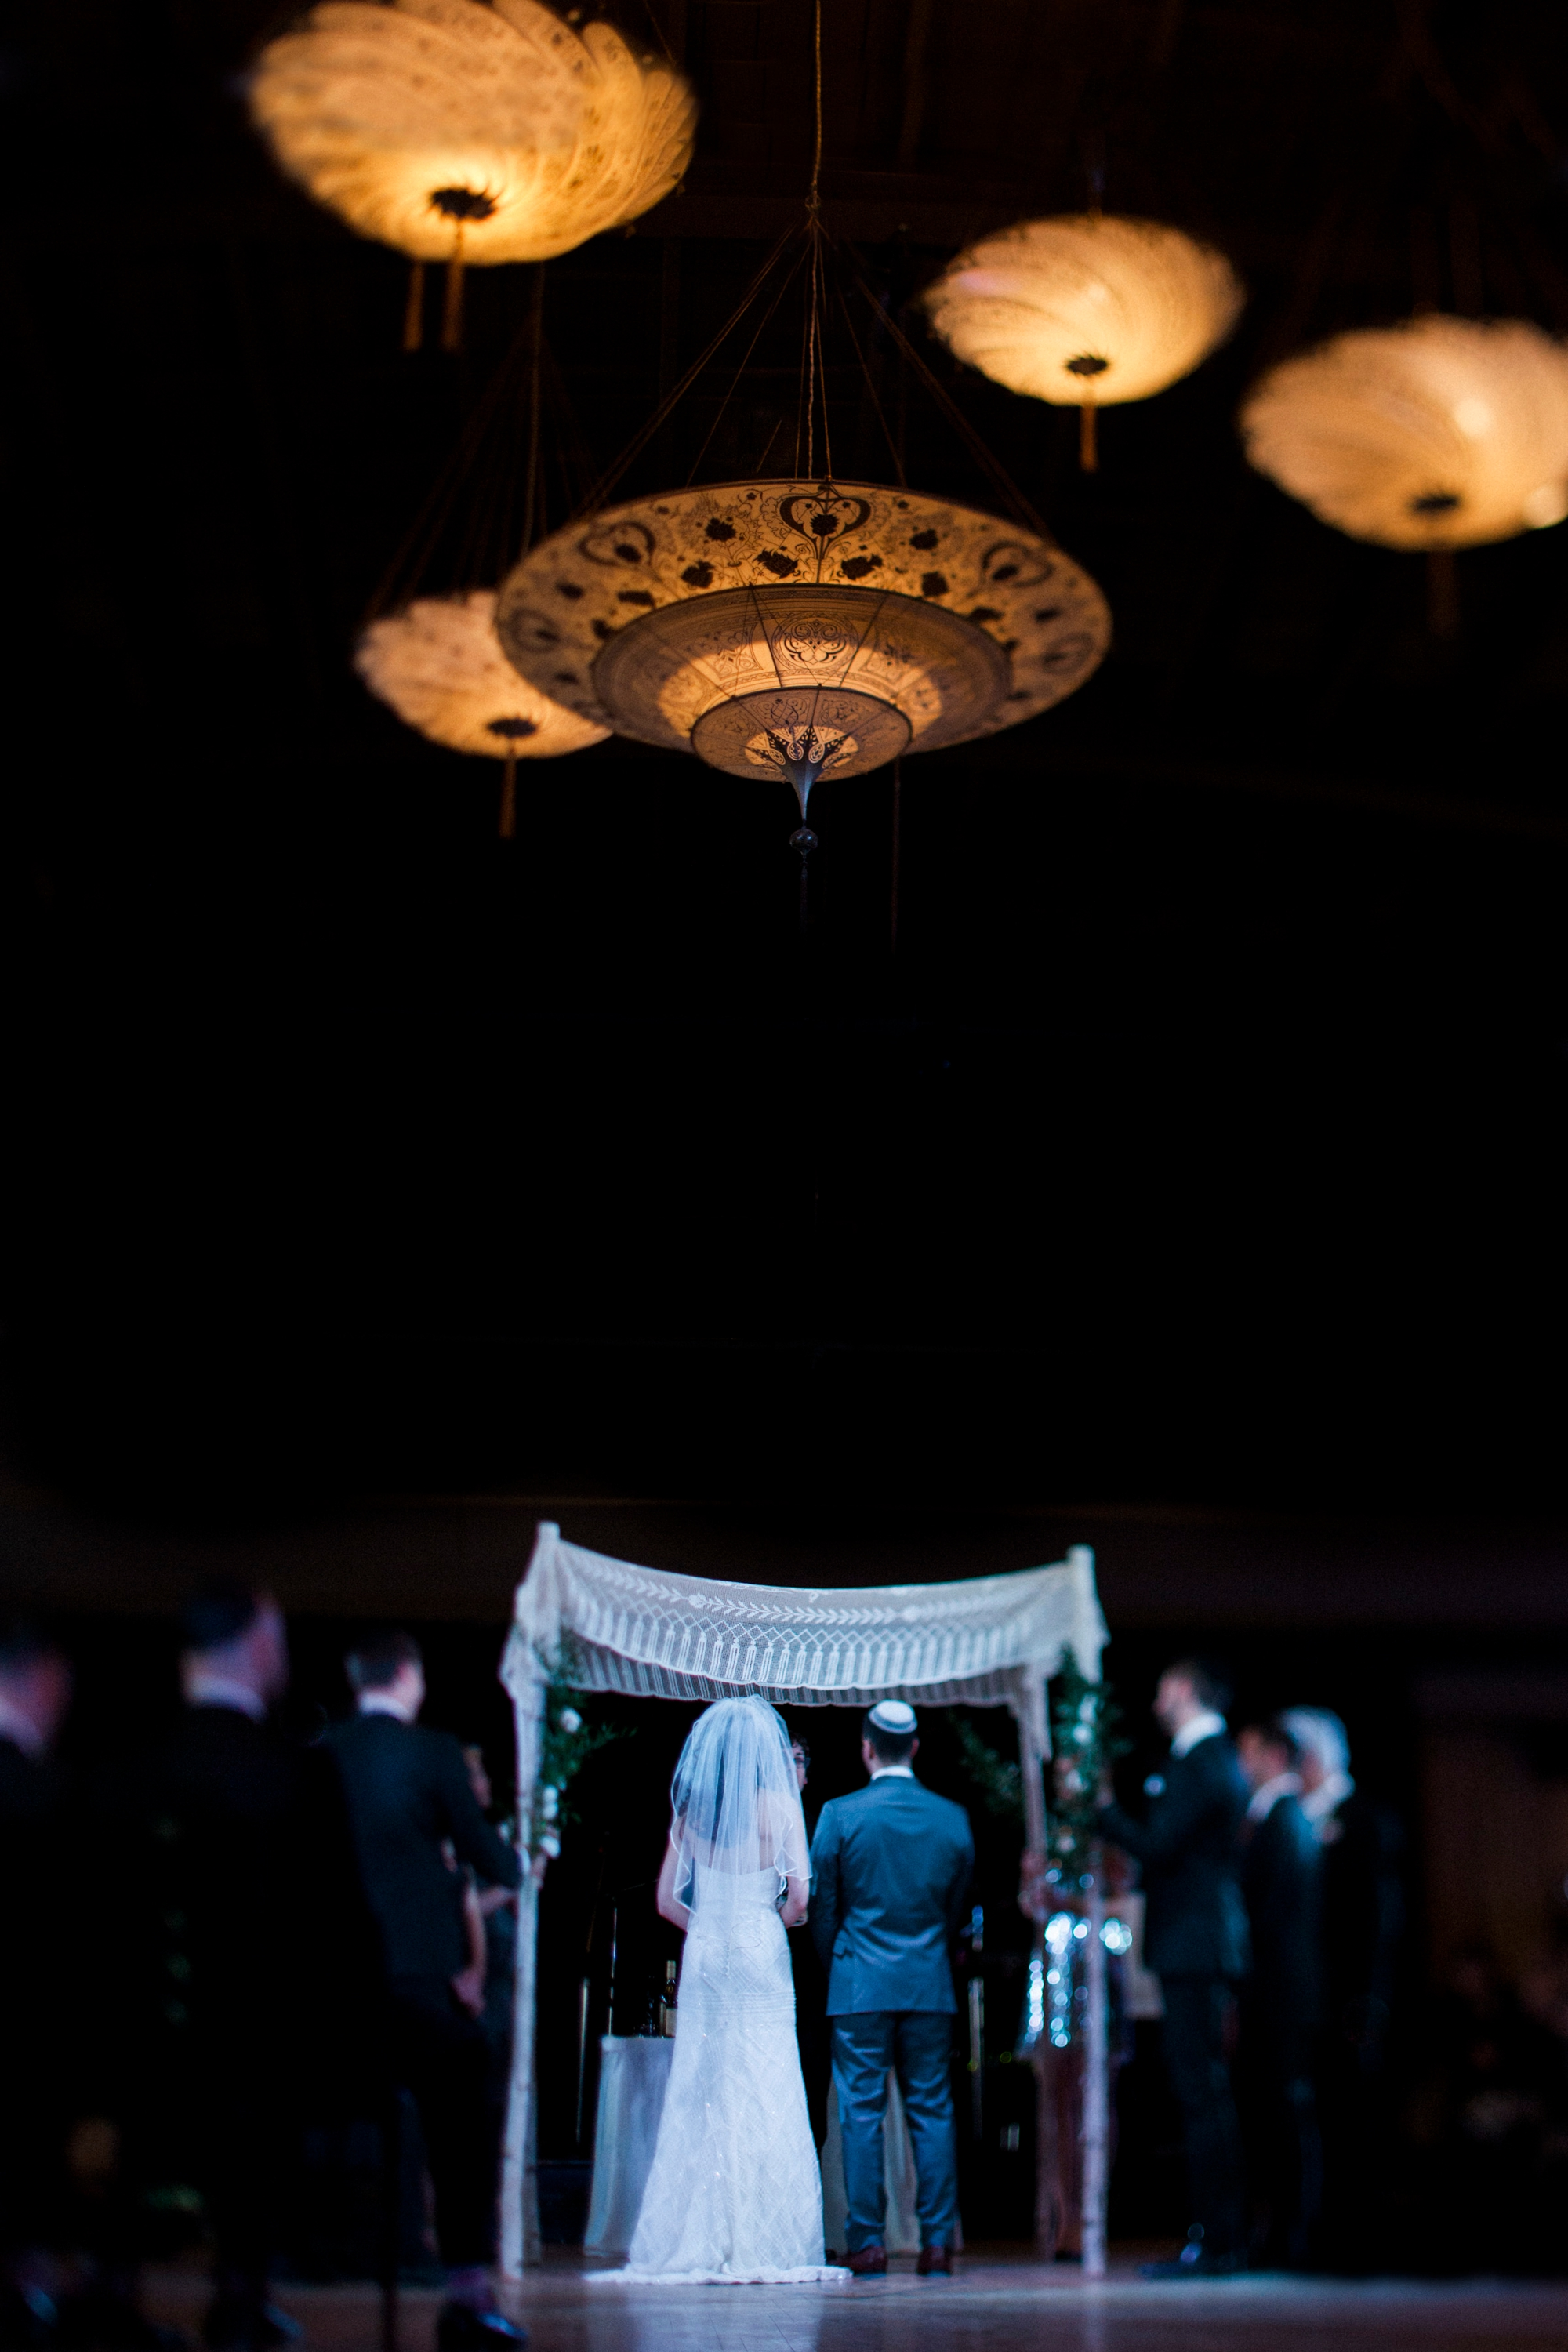 edmonton calgary alberta wedding photographer20.jpg